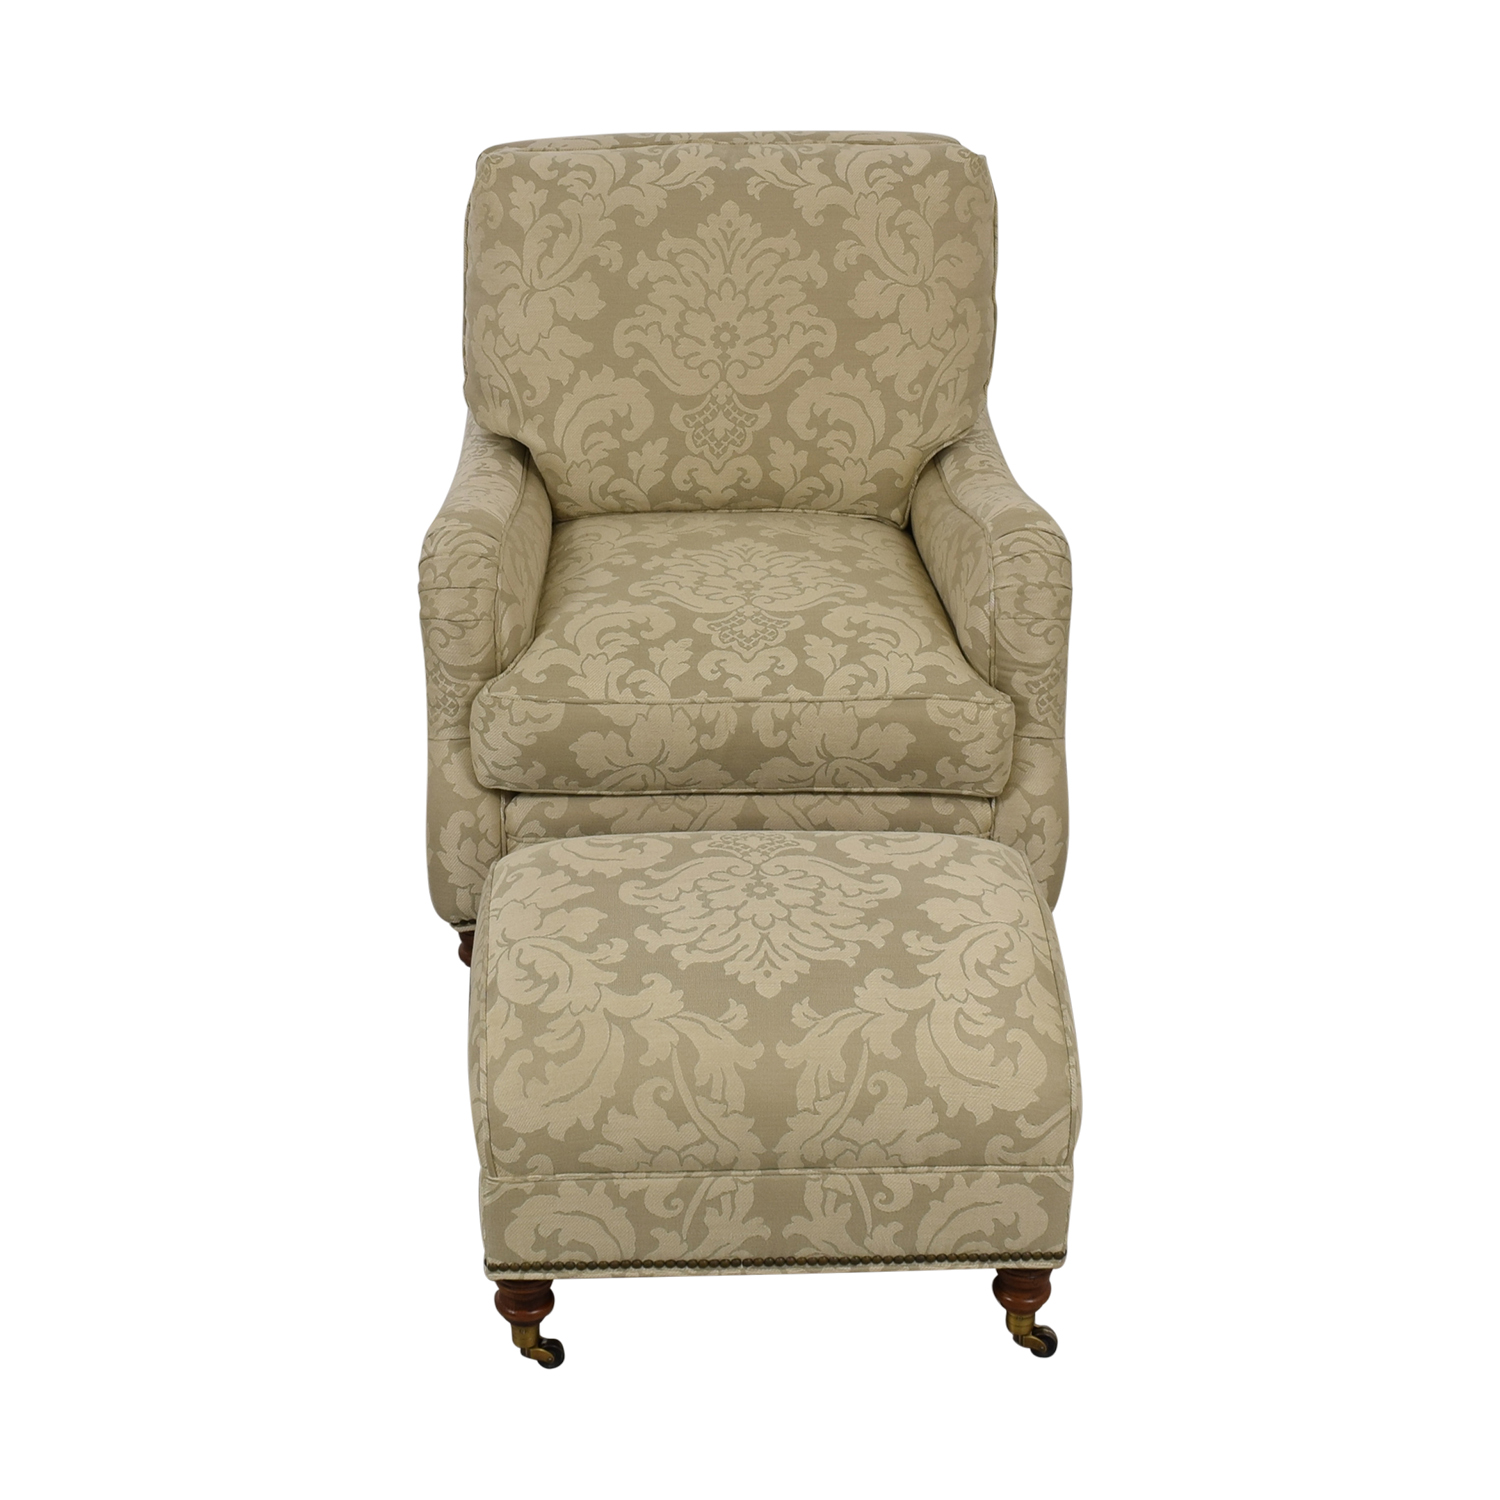 Vanguard Vanguard Beige Upholstered Accent Chair with Ottoman for sale